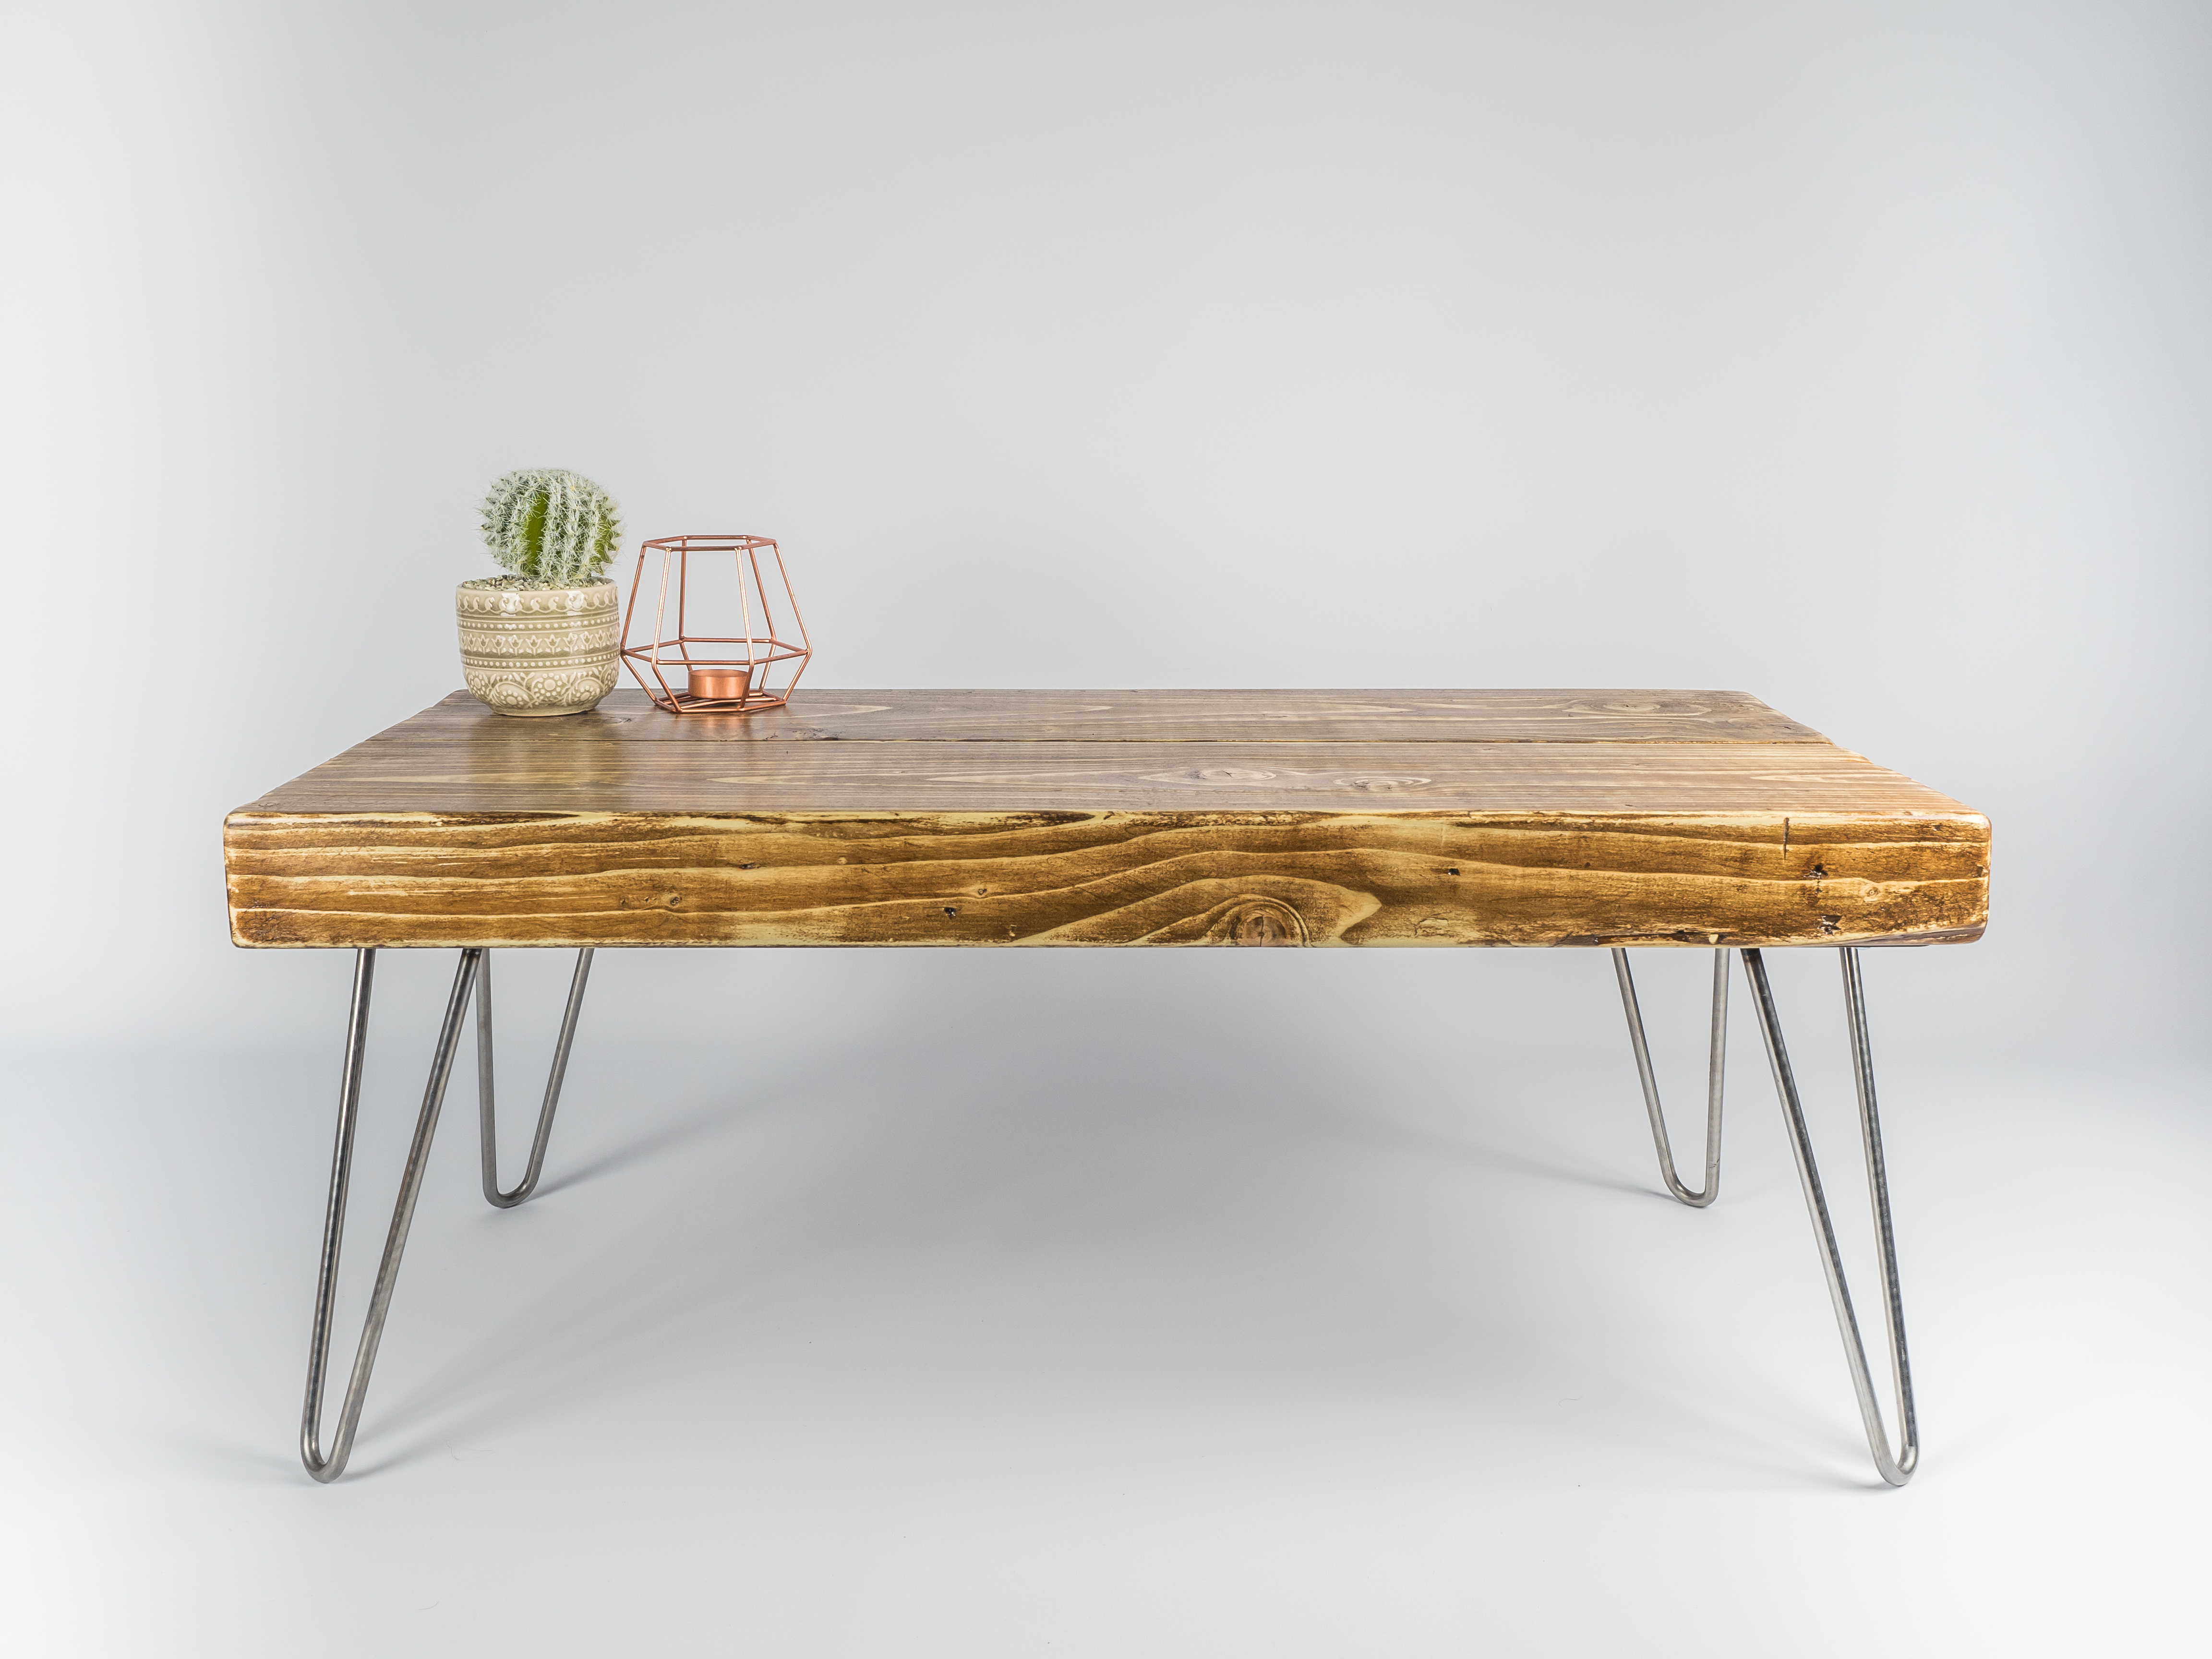 Remarkable Handmade Solid Wood Coffee Table With Bare Steel Hairpin Legs Lamtechconsult Wood Chair Design Ideas Lamtechconsultcom